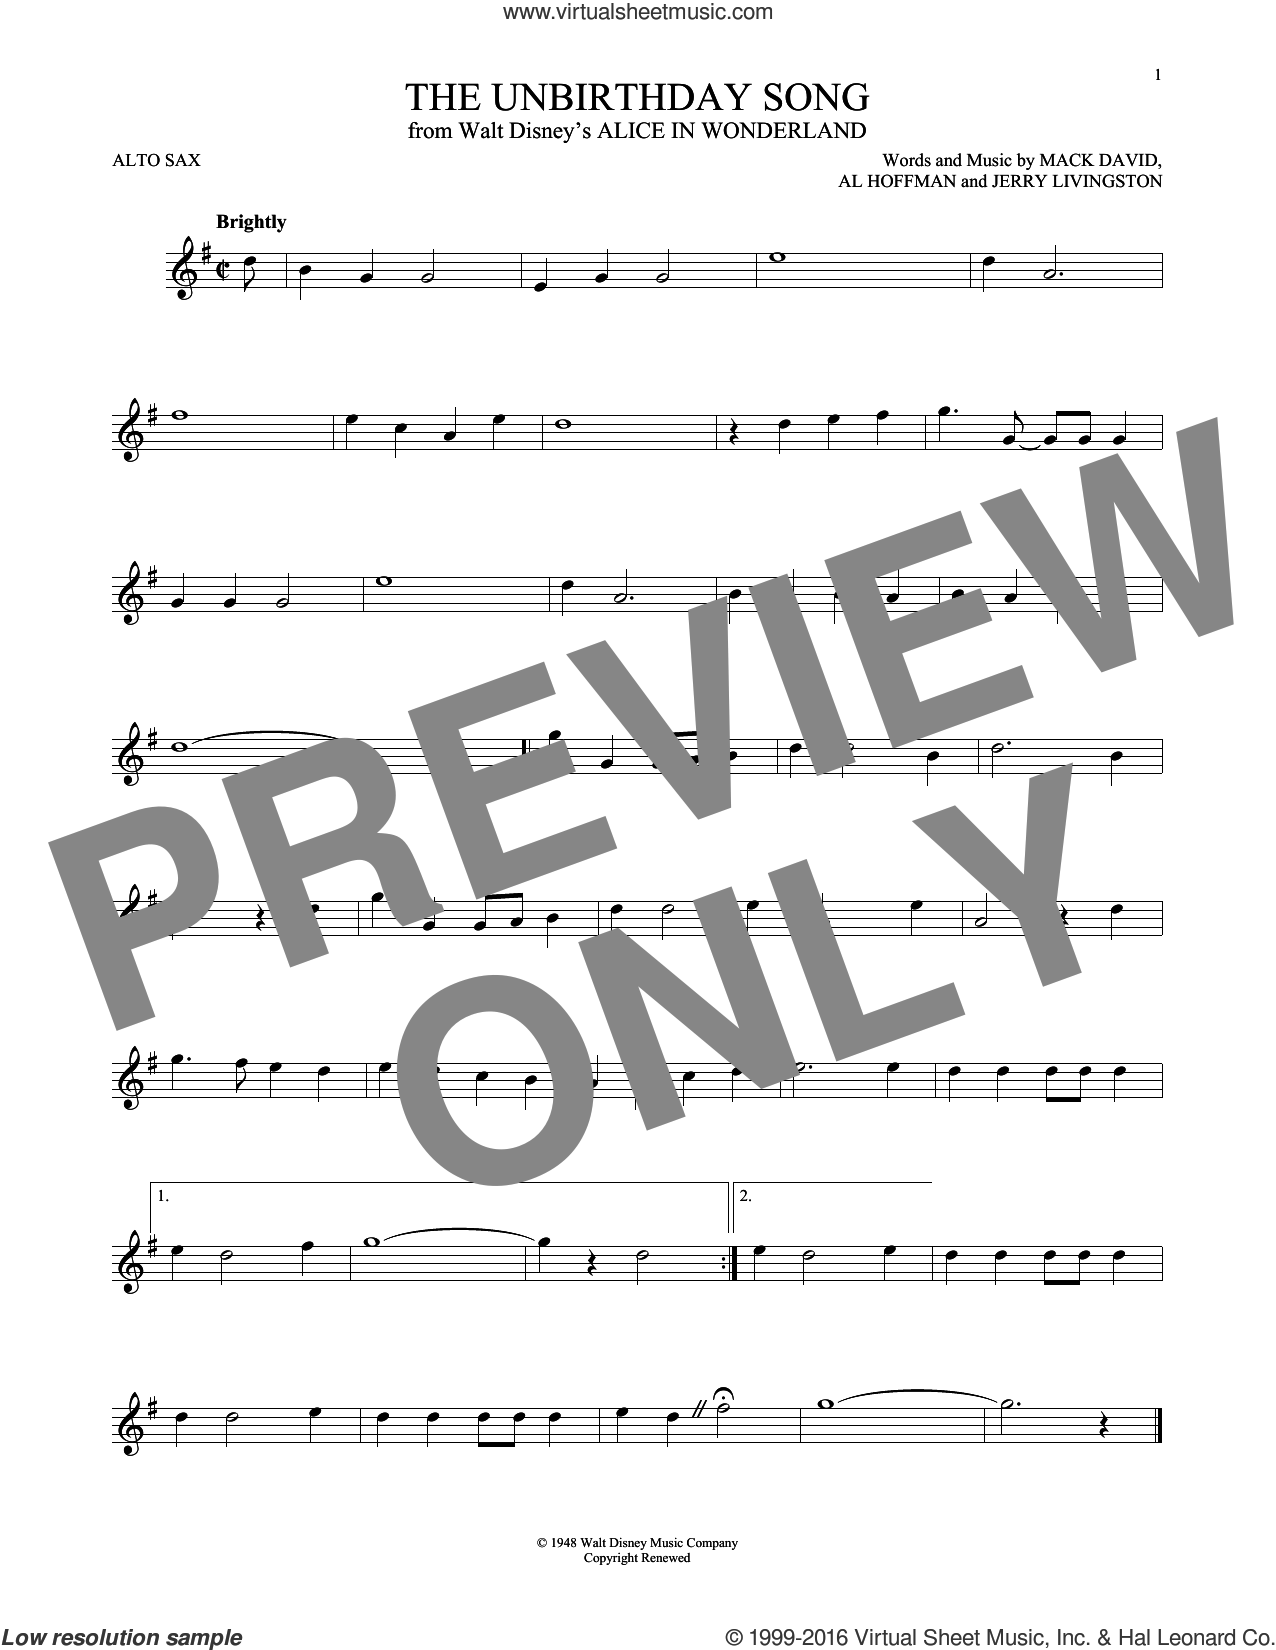 The Unbirthday Song sheet music for alto saxophone solo by Al Hoffman, Jerry Livingston, Mack David and Mack David, Al Hoffman and Jerry Livingston, intermediate skill level